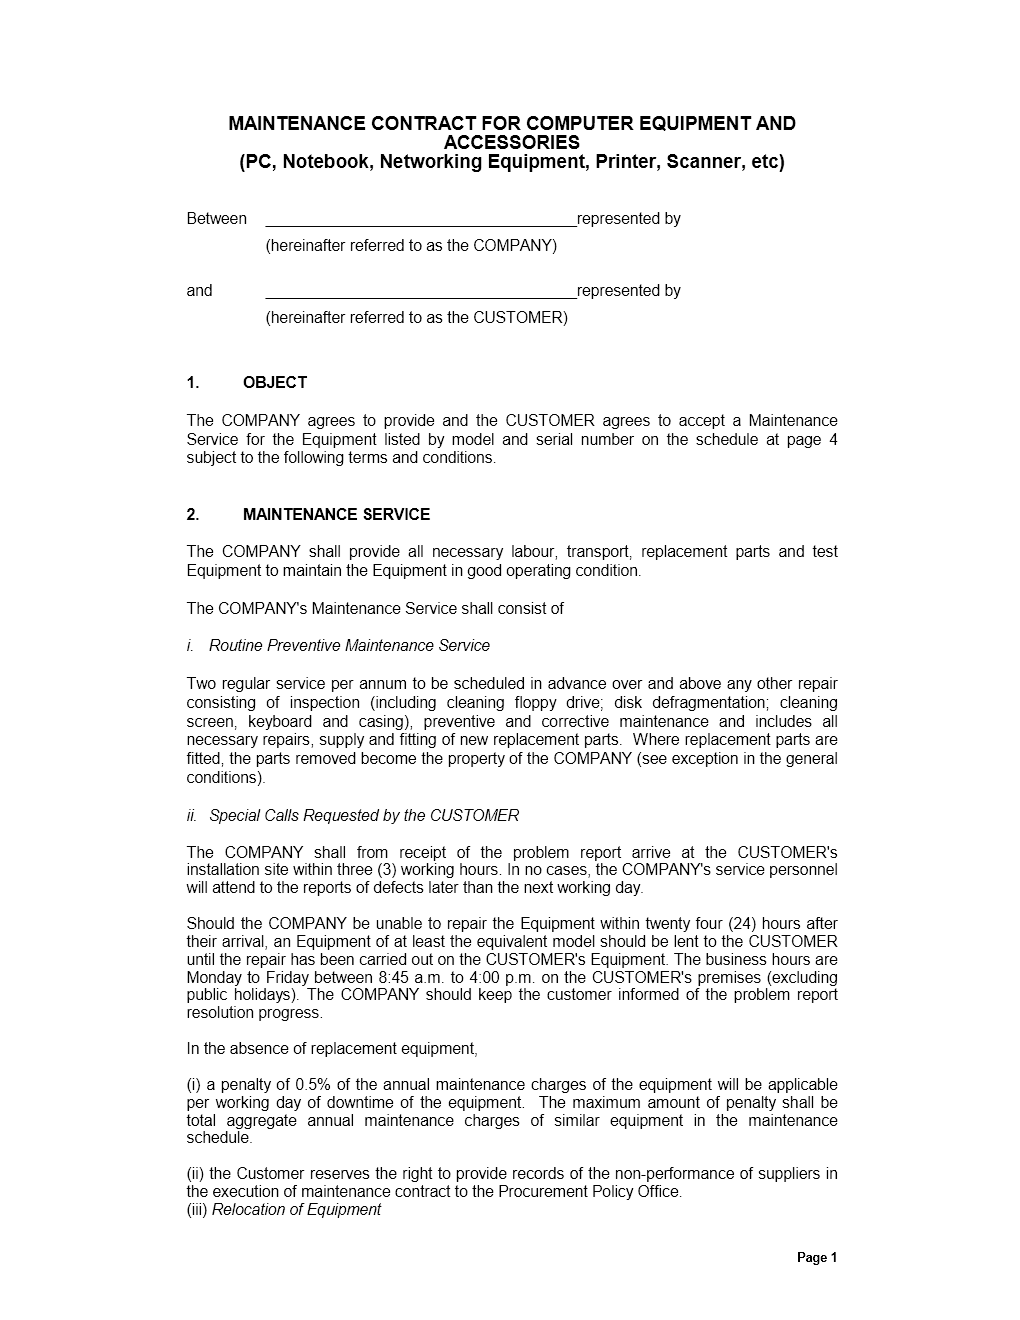 Perfect Consulting Proposal Template U Business Agreementsample Agreement Form  Templatepng Consulting It Consultant Contract Template Agreementsample Agreement  Form  Construction Contract Template Word